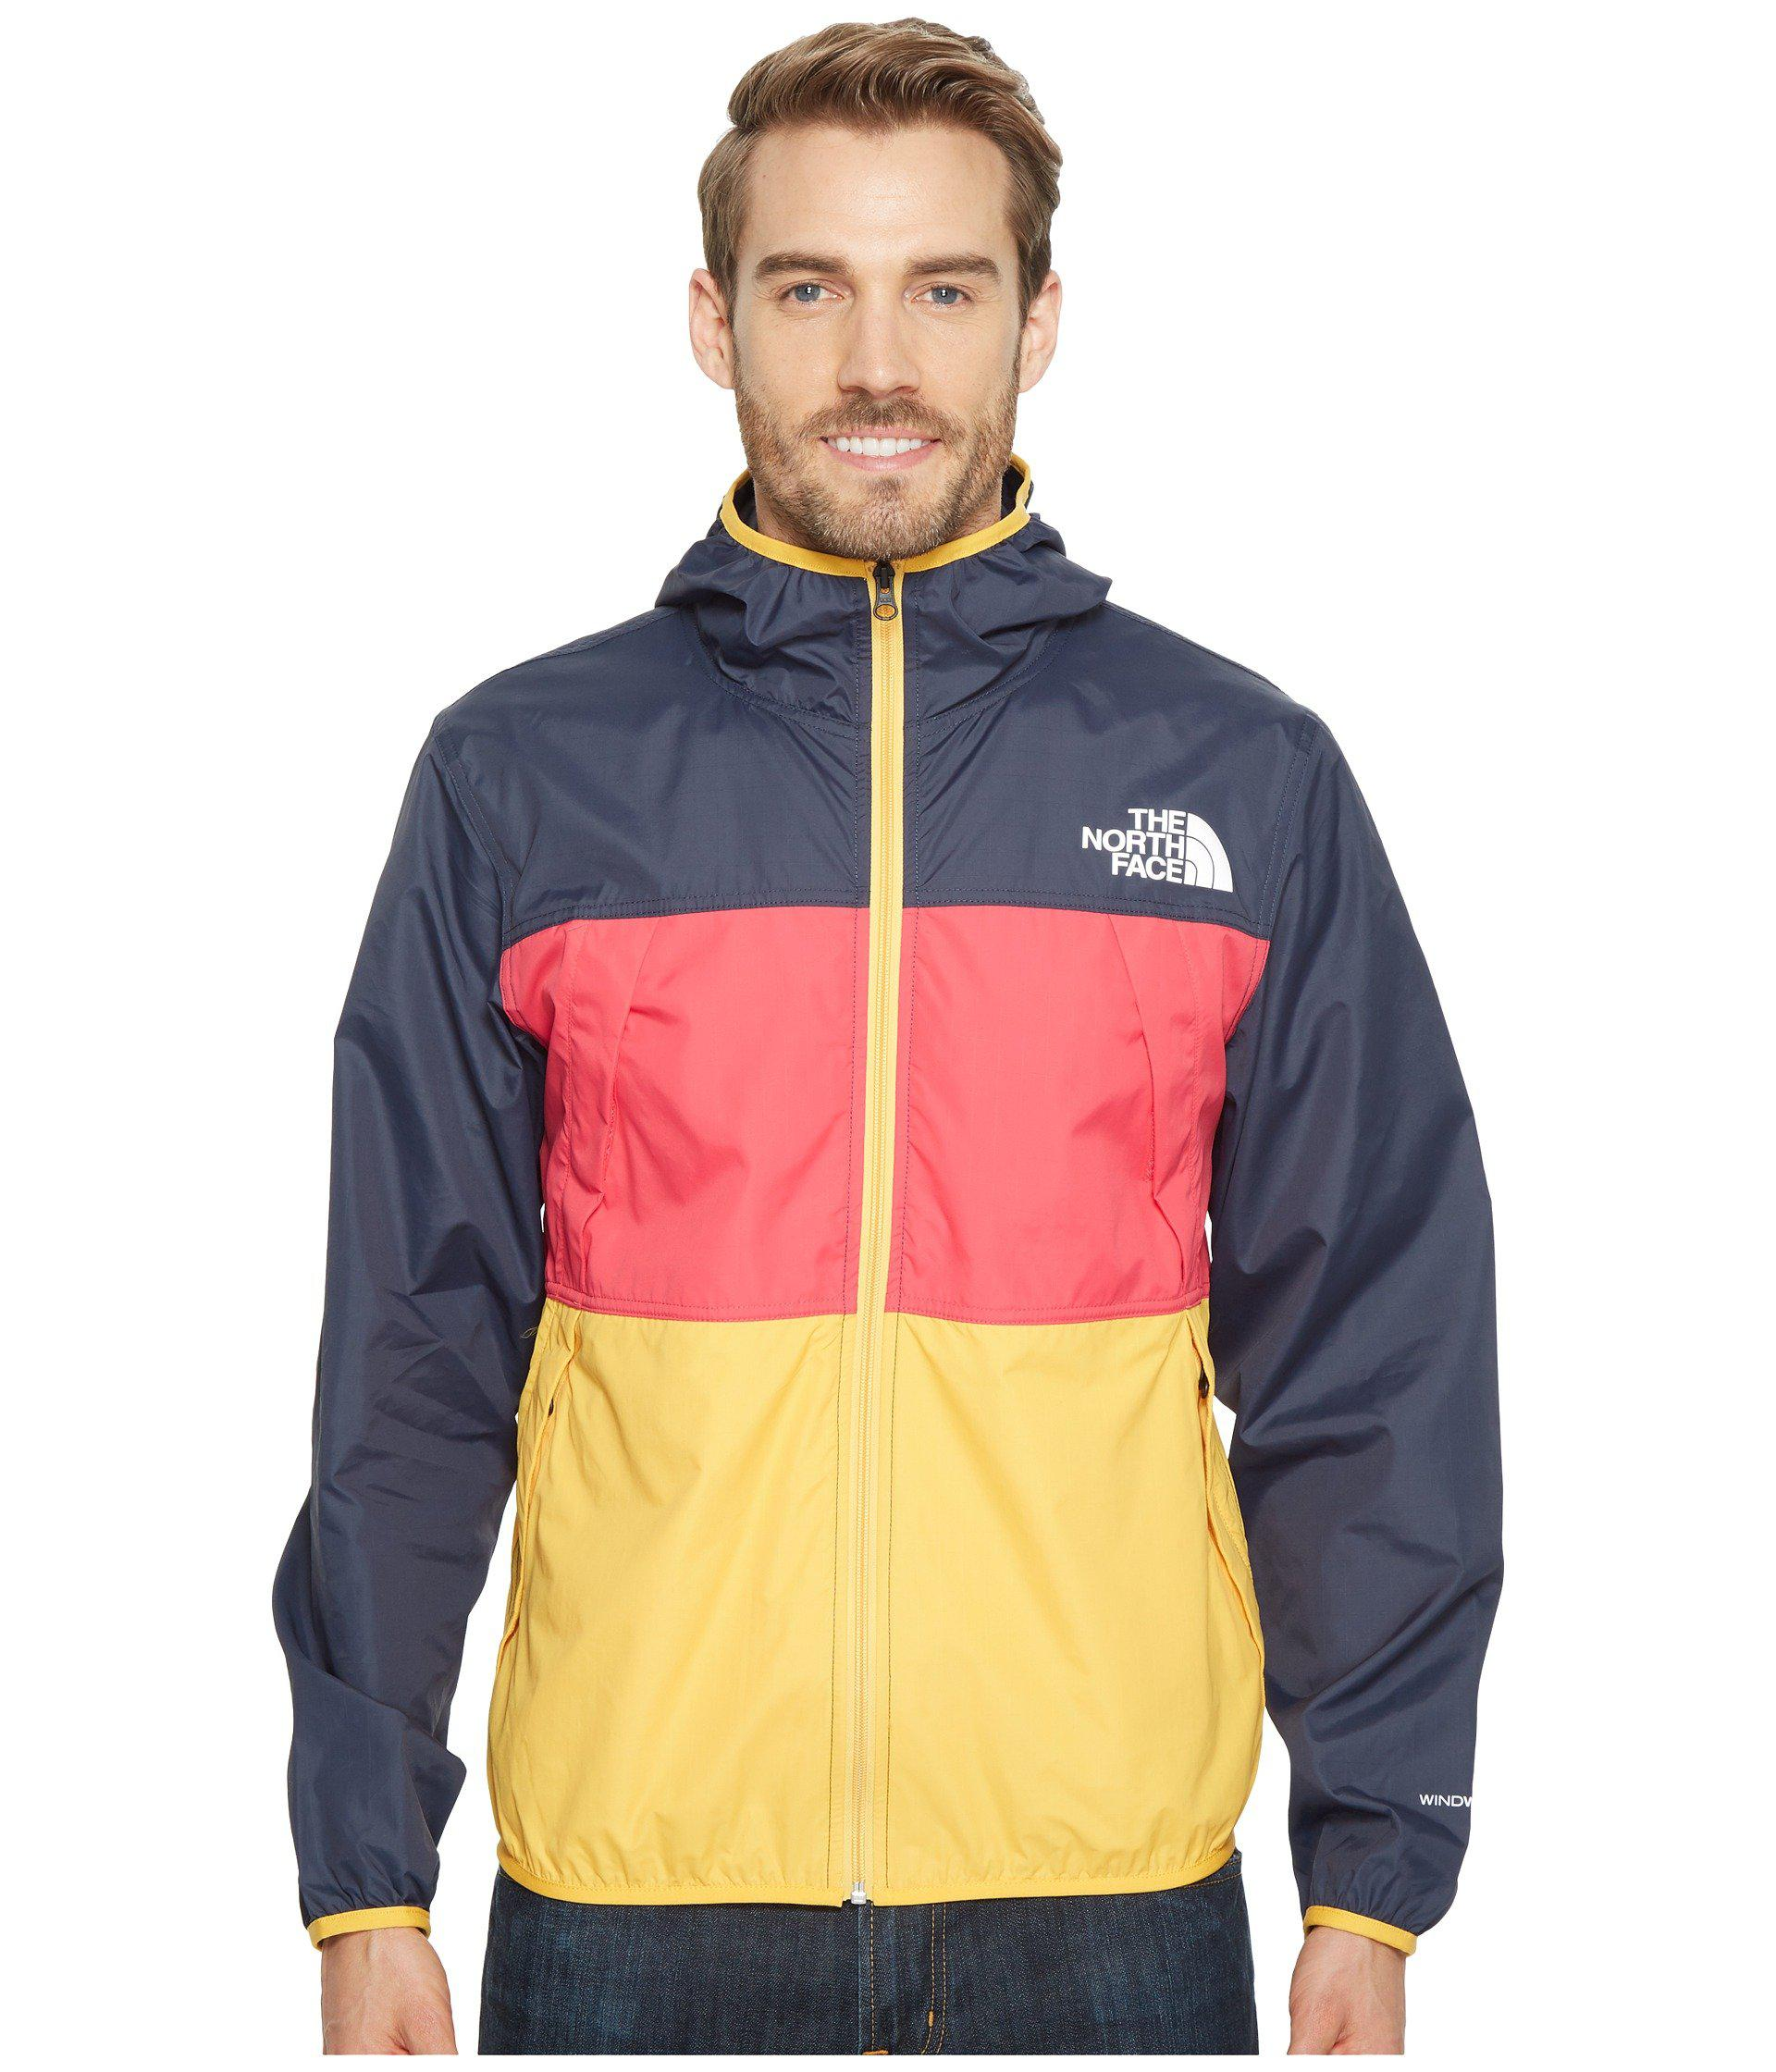 91fb31611a Lyst - The North Face Telegraph Wind Jacket (urban Navy raspberry ...